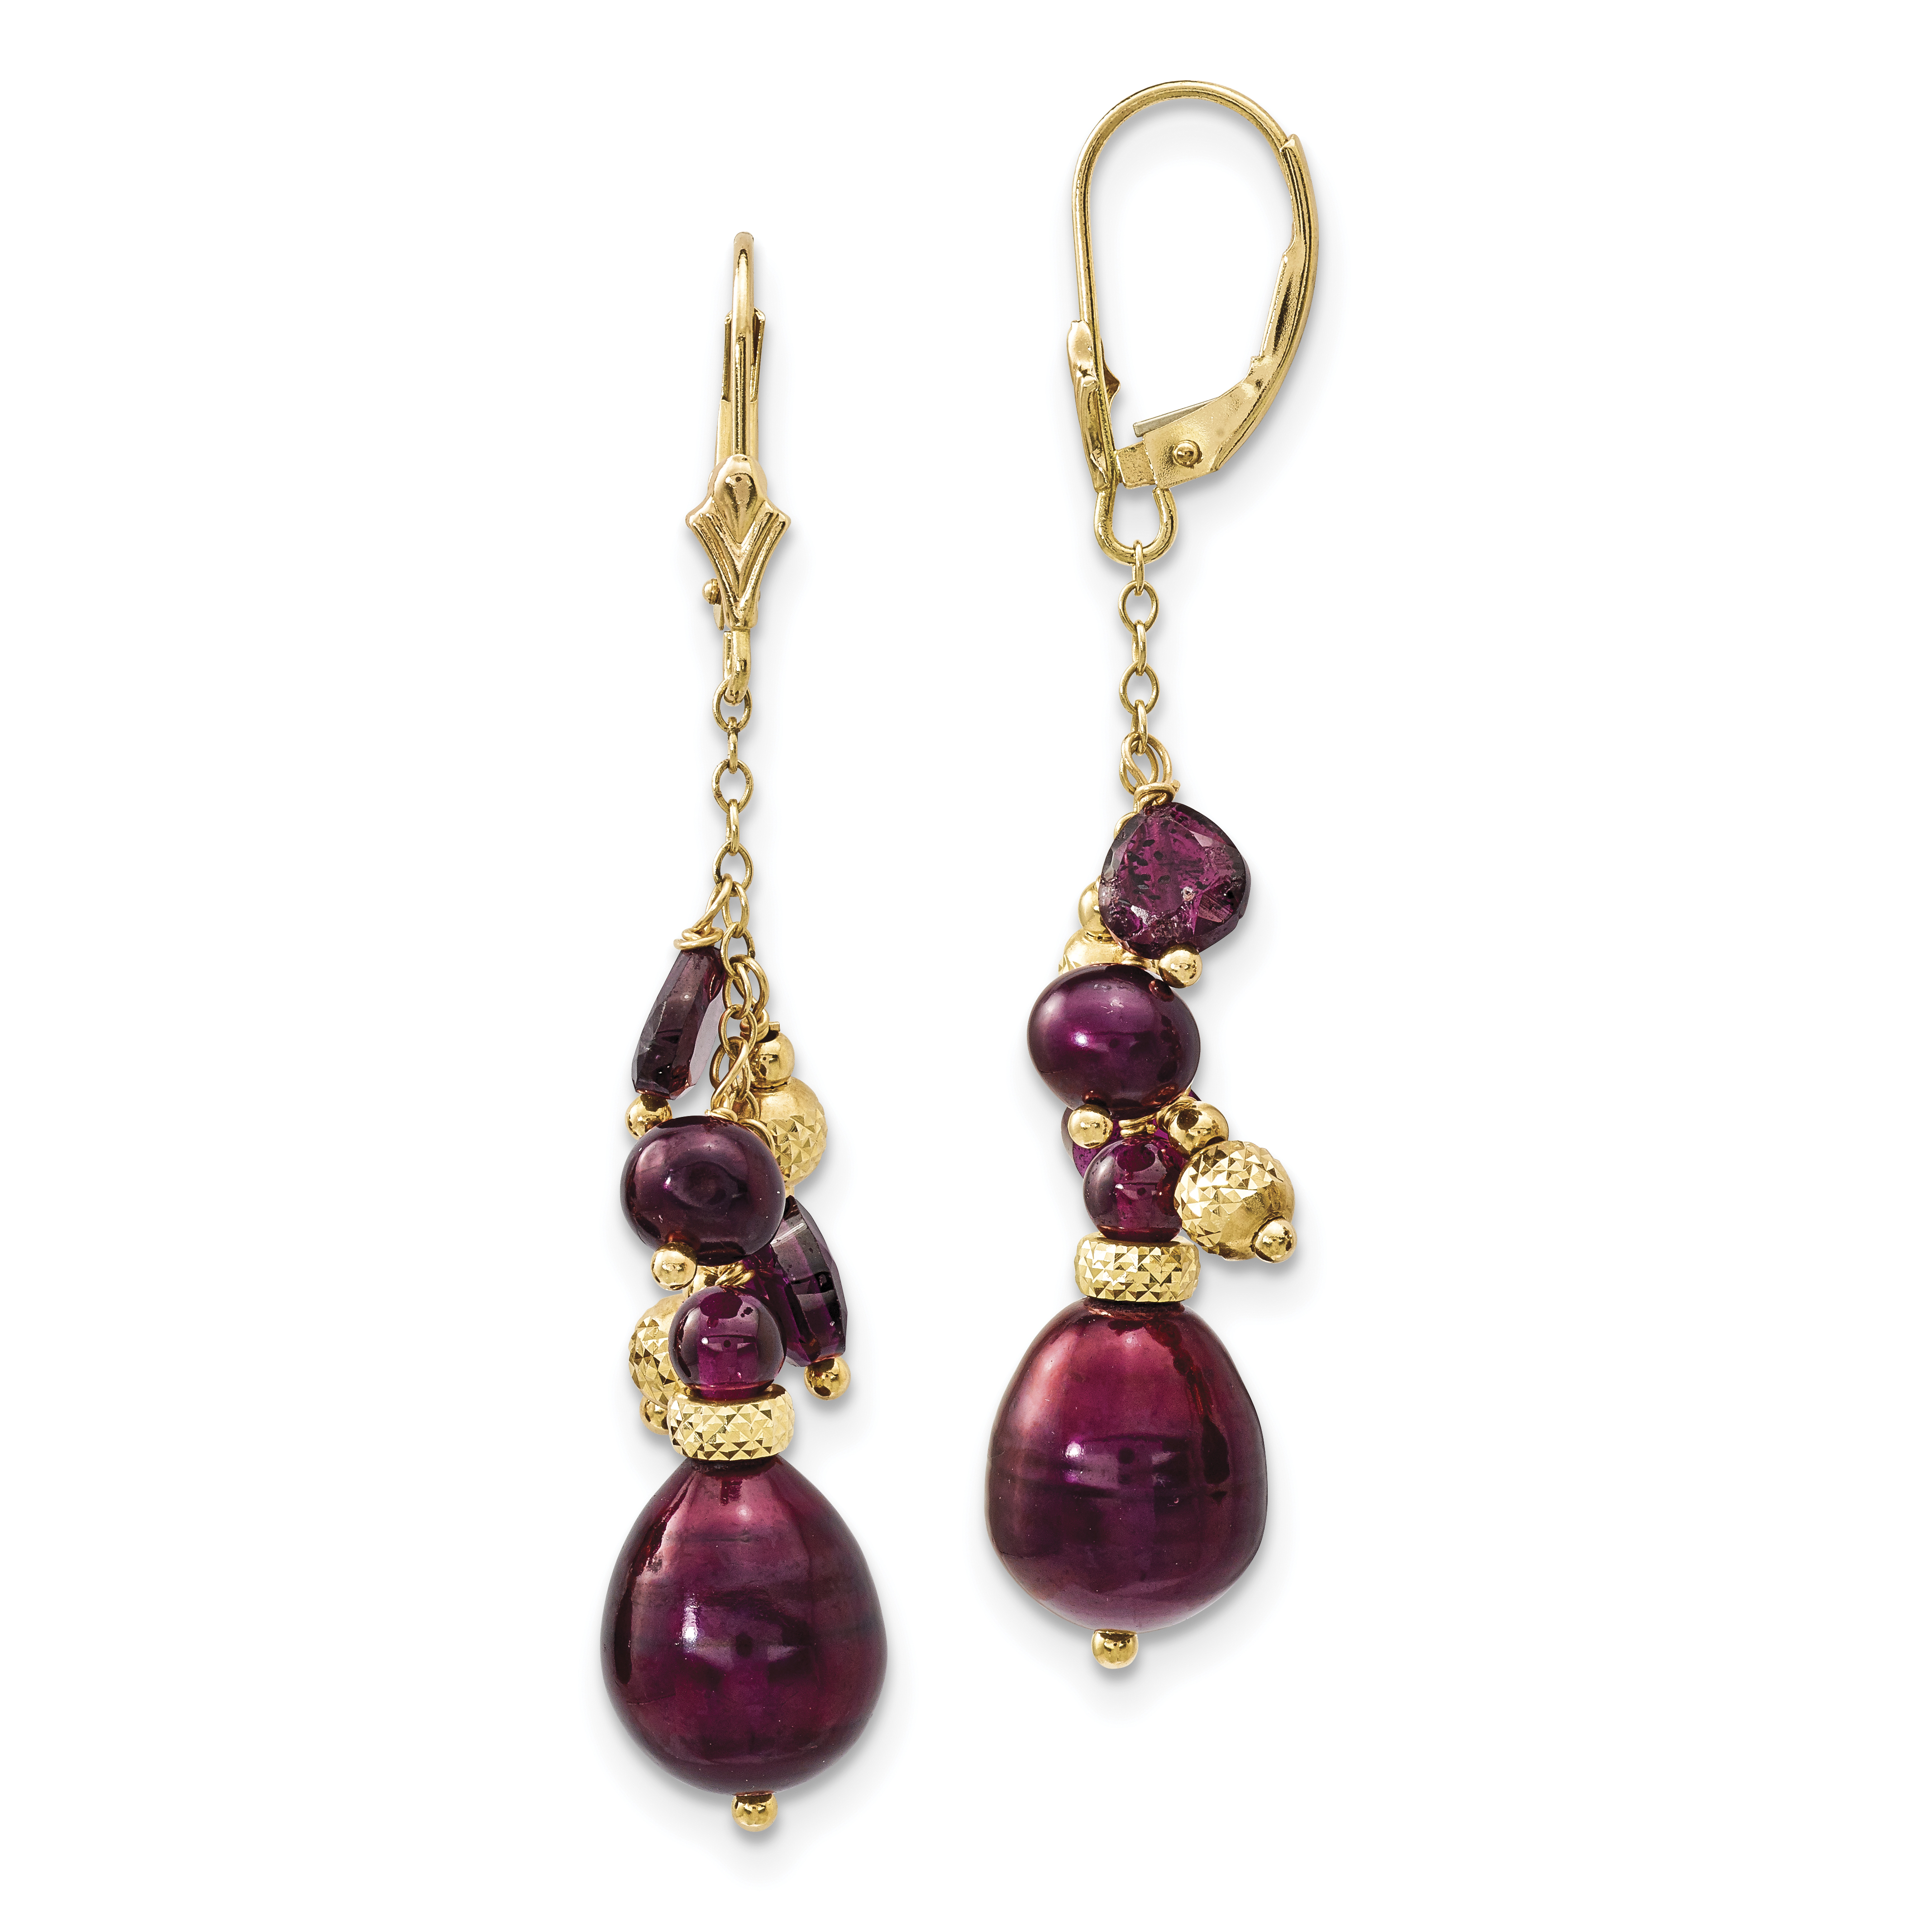 Cranberry Earrings Vintage Glass Retro Leverback Yoga Gifts for Her Dark Pink Dangle Earrings Gift for Sister Heart Chakra Jewelry Women